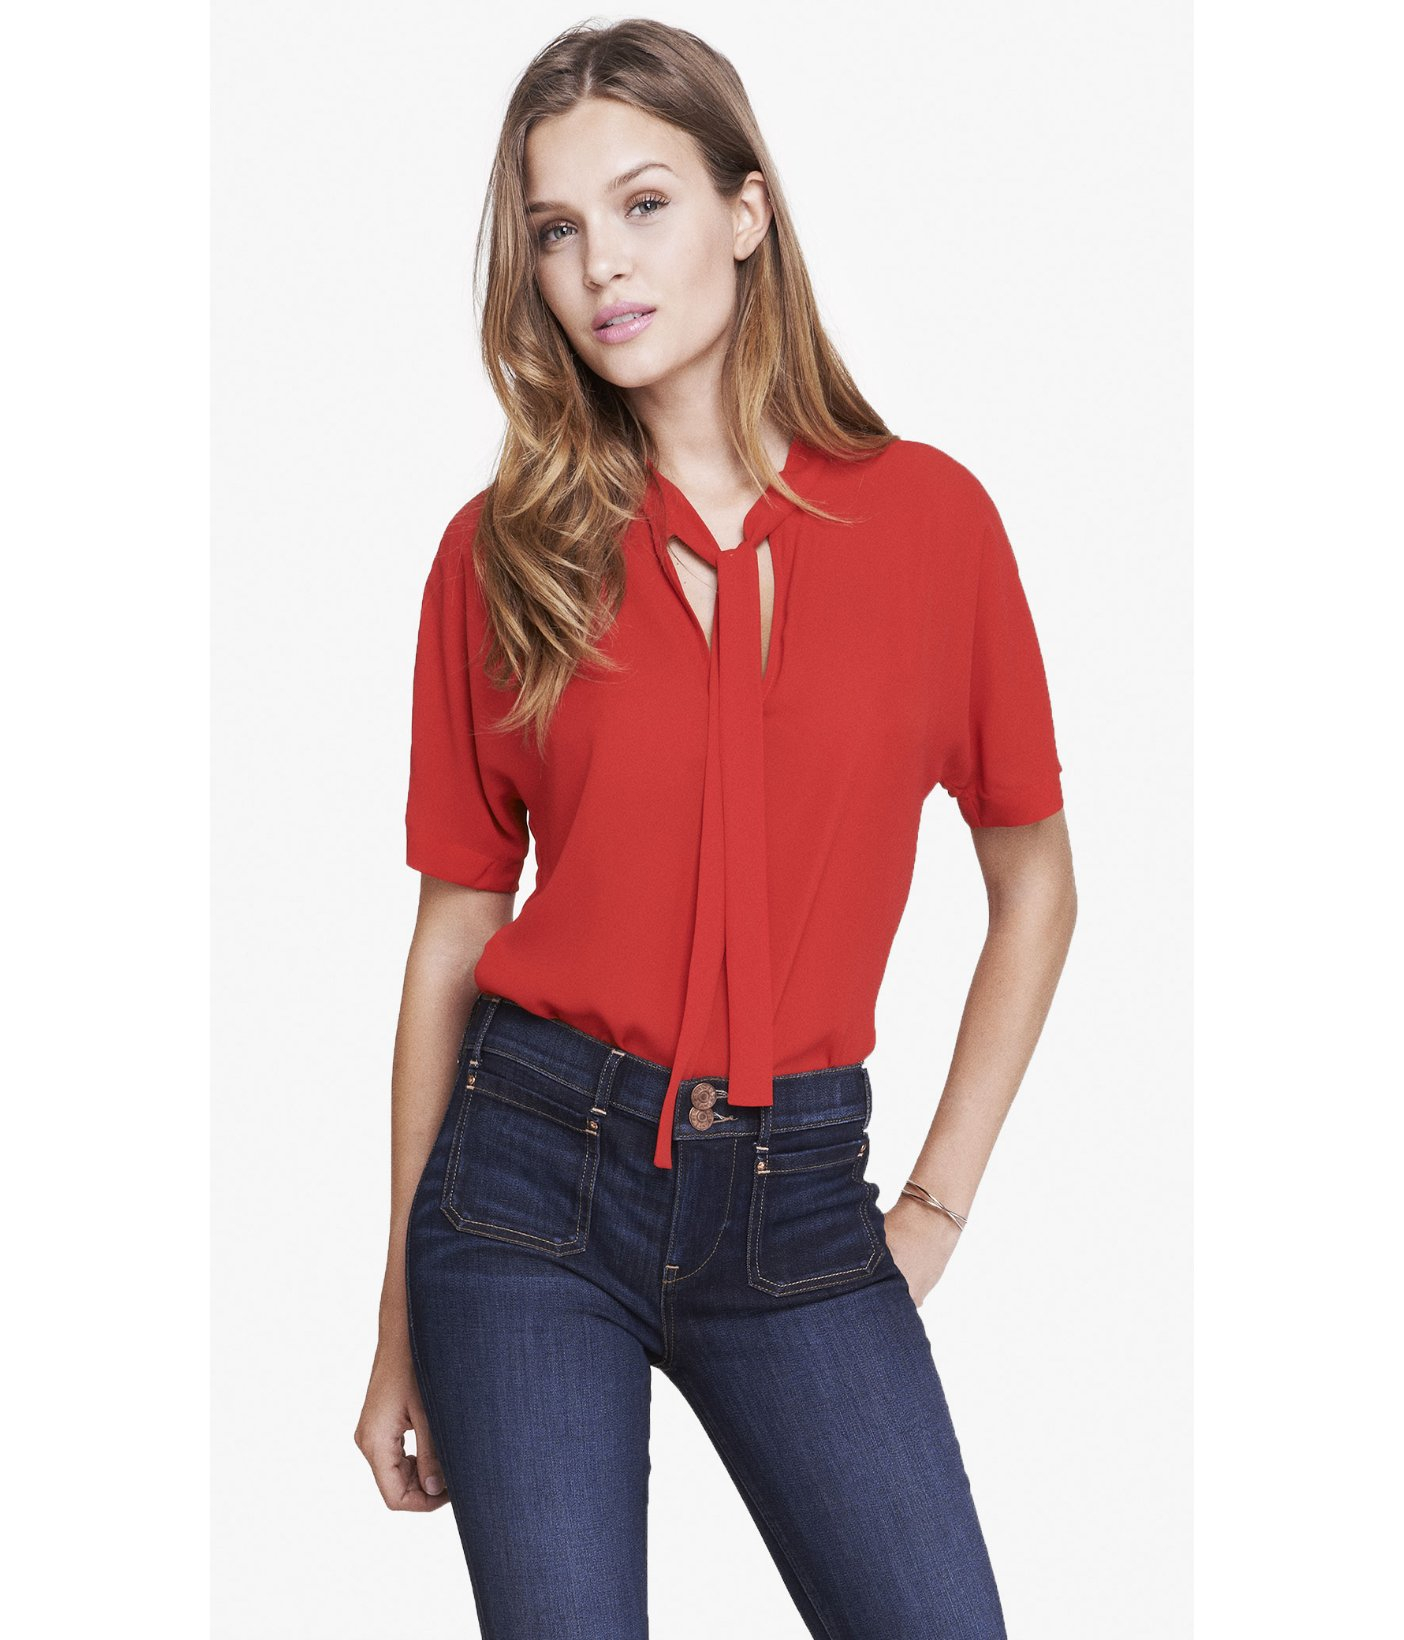 Express tie front short sleeve blouse in red engine red for Express shirt and tie